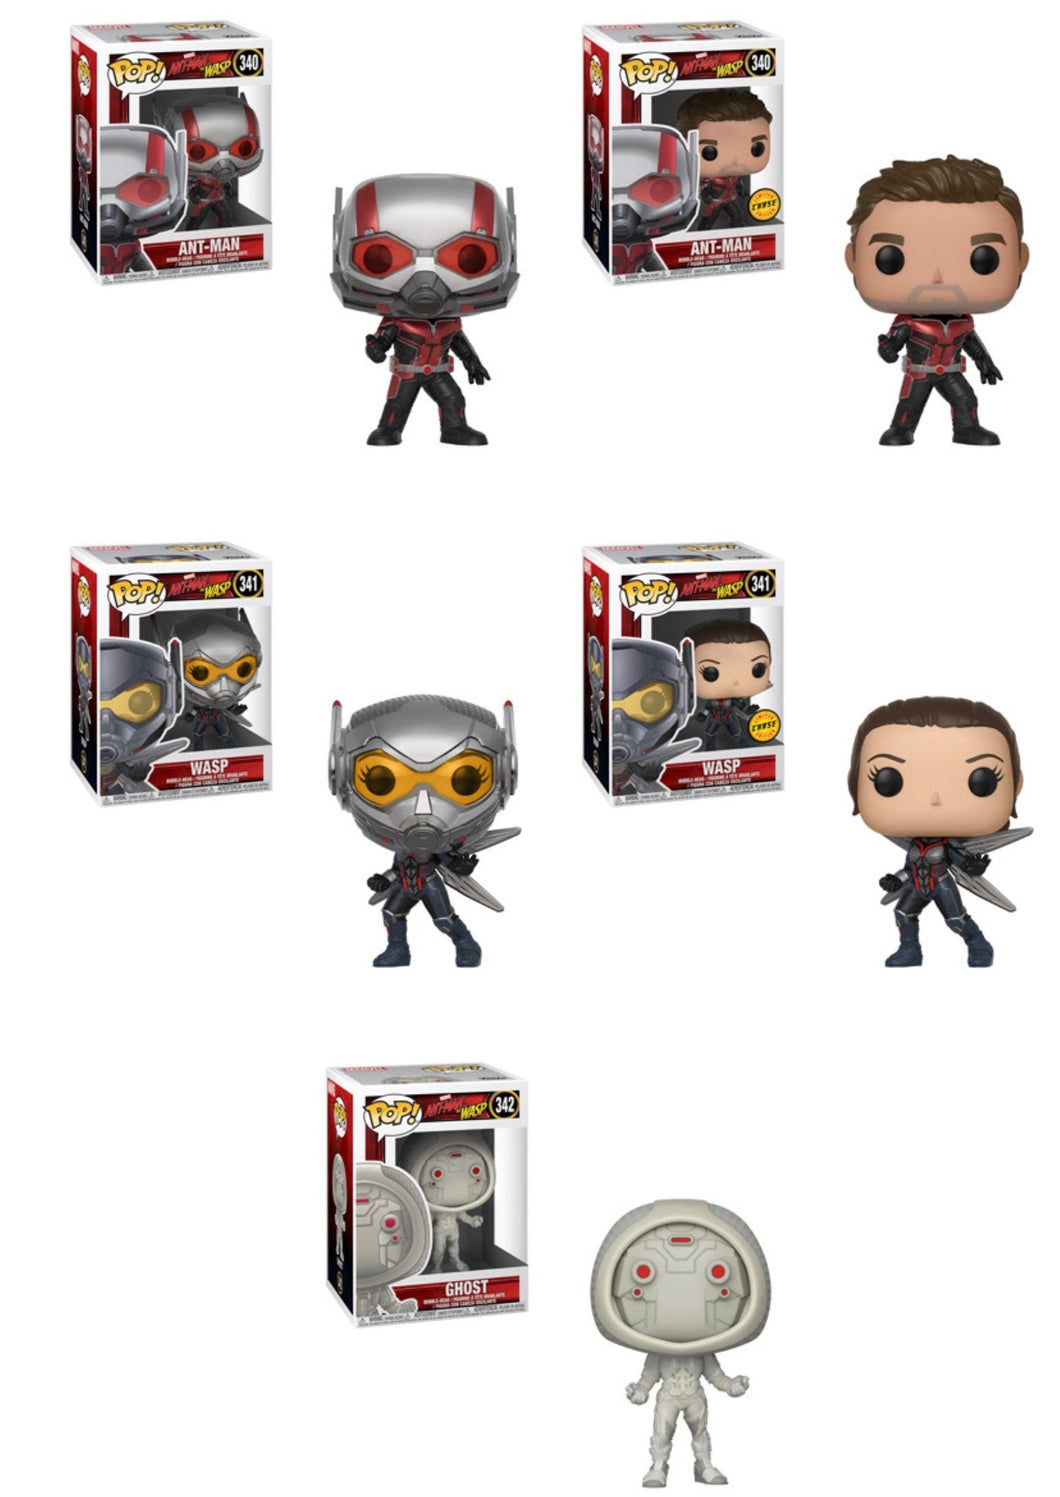 Set of 5 with Chases - Marvel Ant-Man & The Wasp - Funko Pop Vinyl - SUMMER